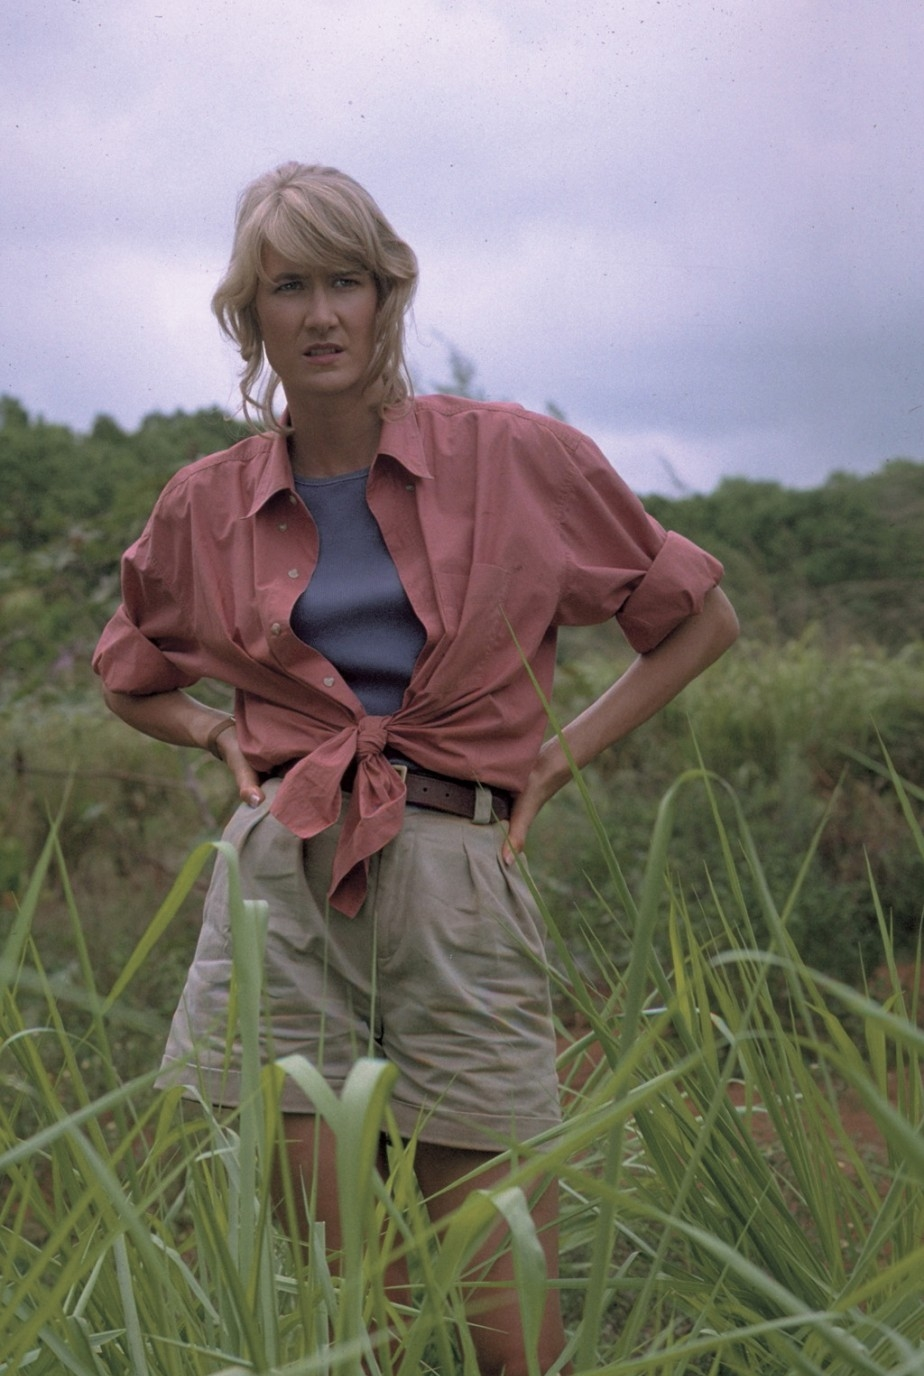 Ellie Sattler in Jurassic Park #movies #film #adventure